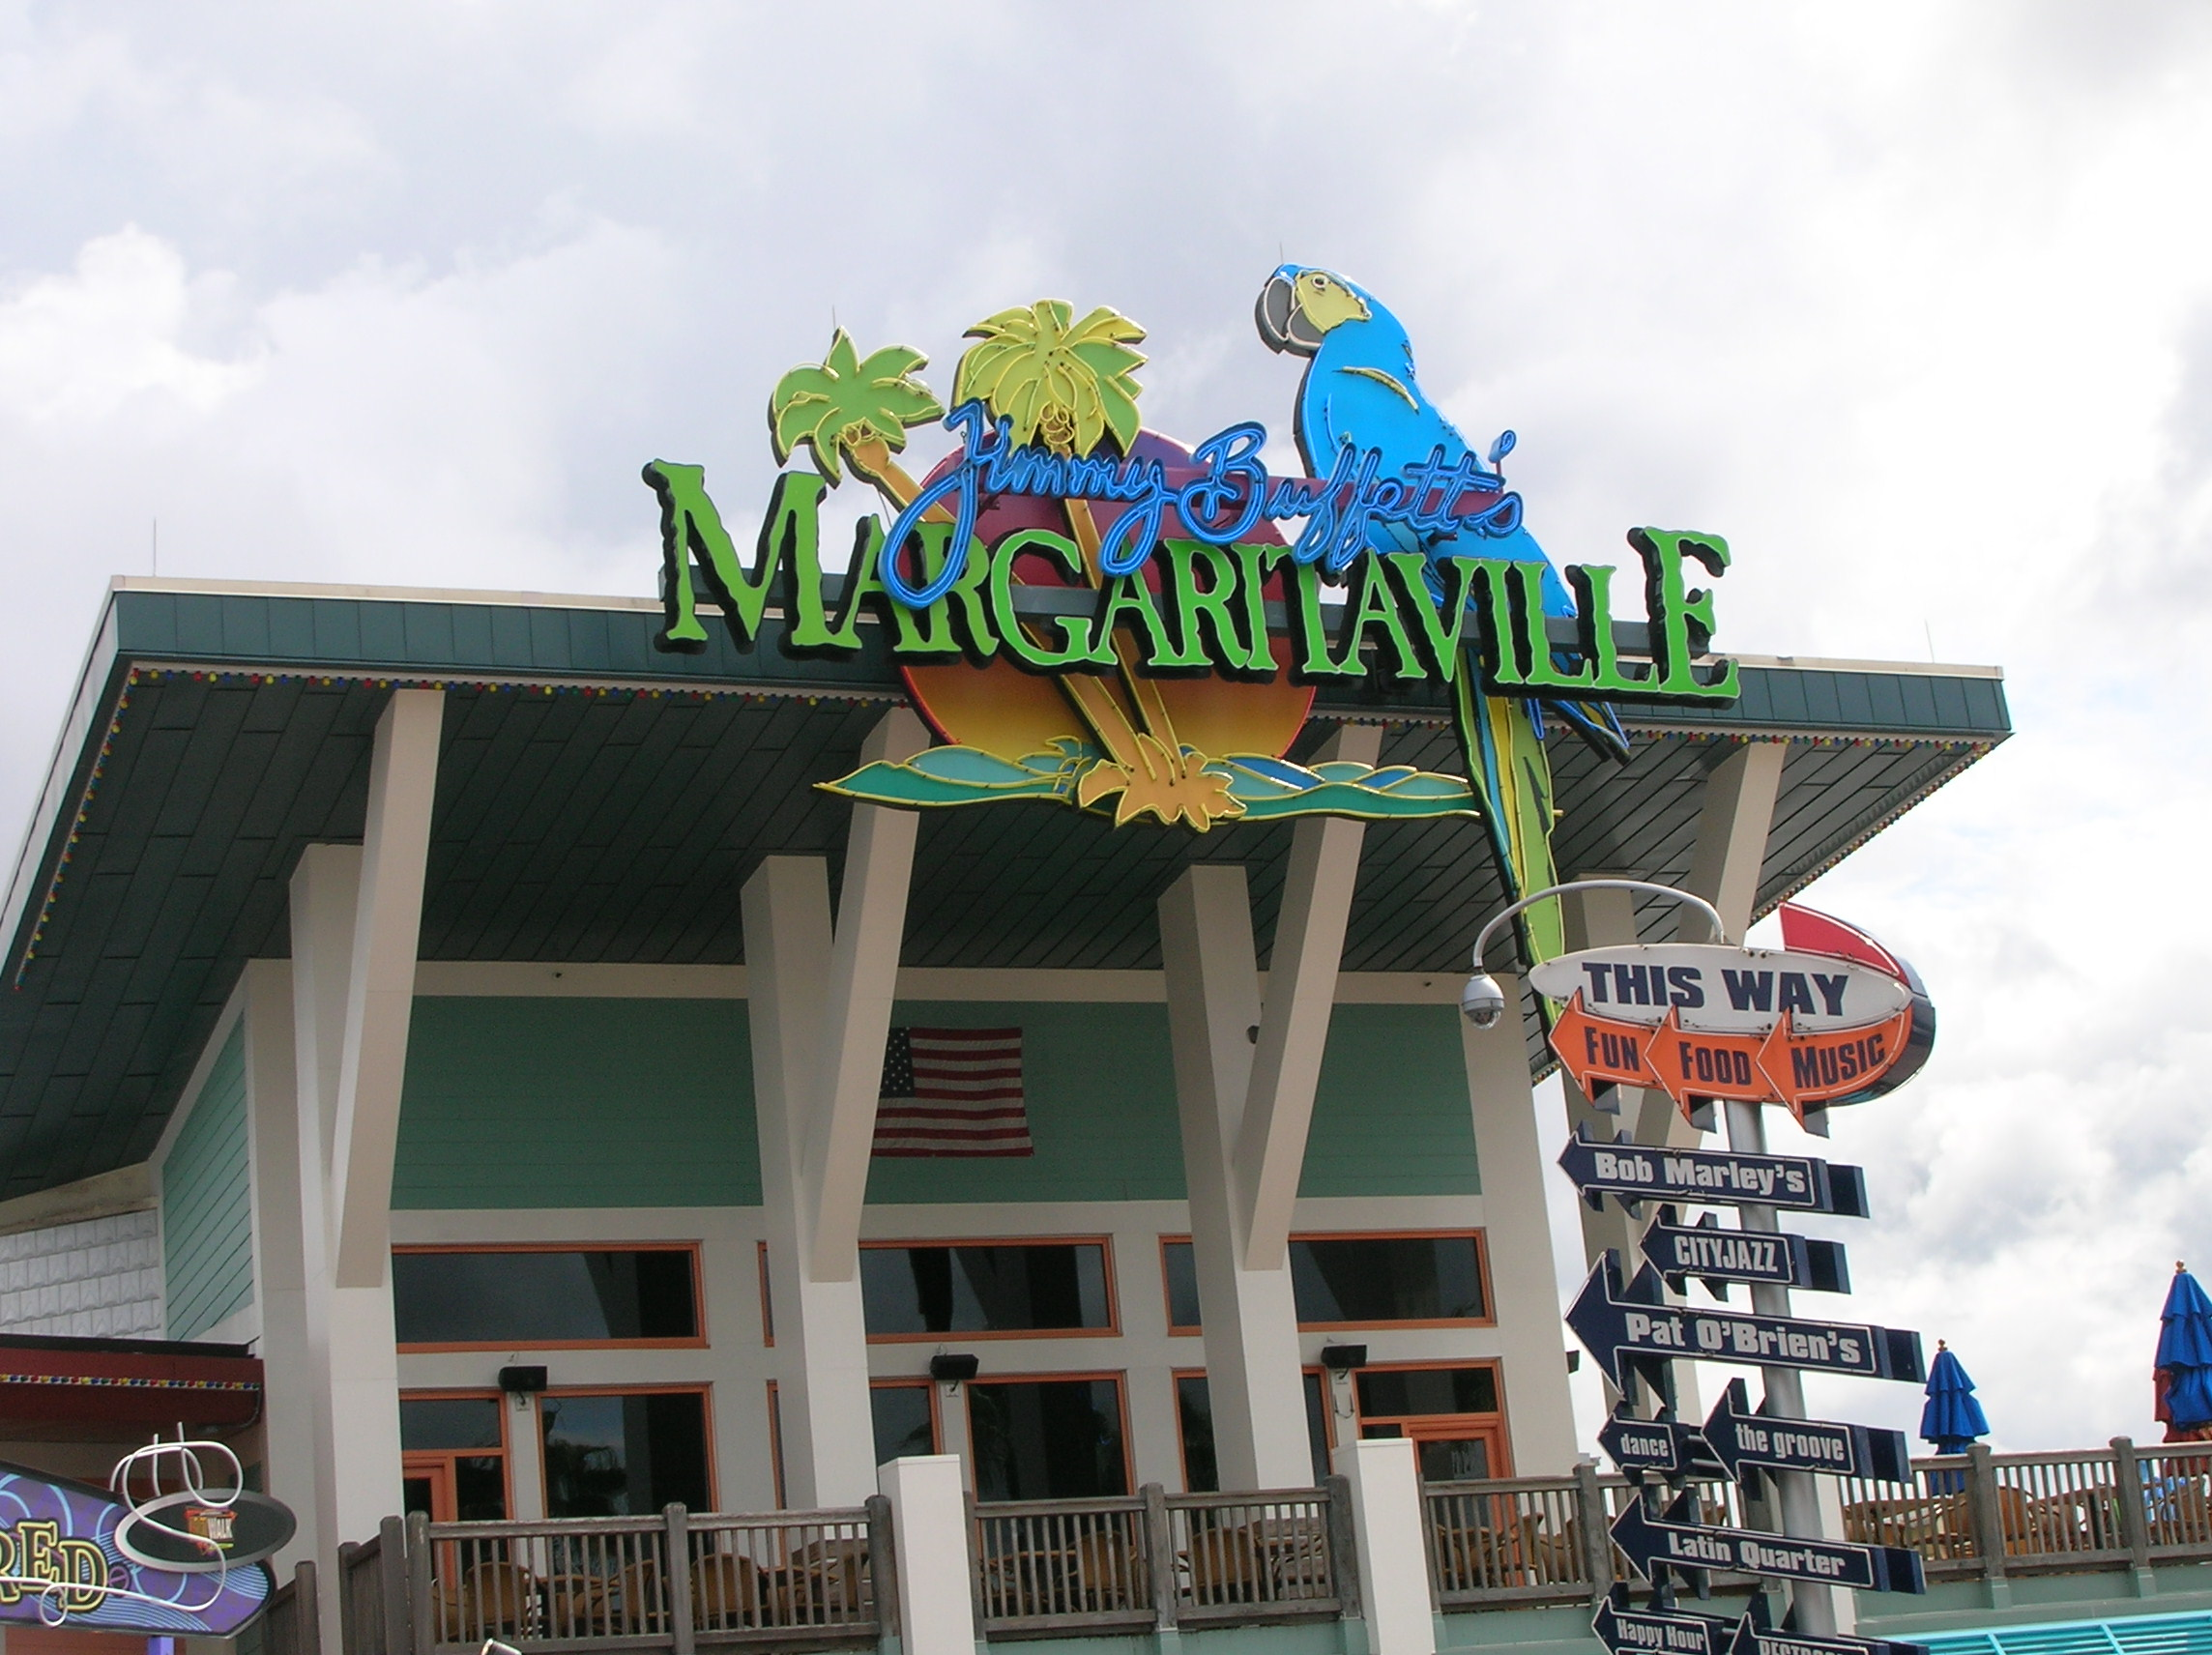 Island H20 Live! set to cause a splash at the Margaritaville